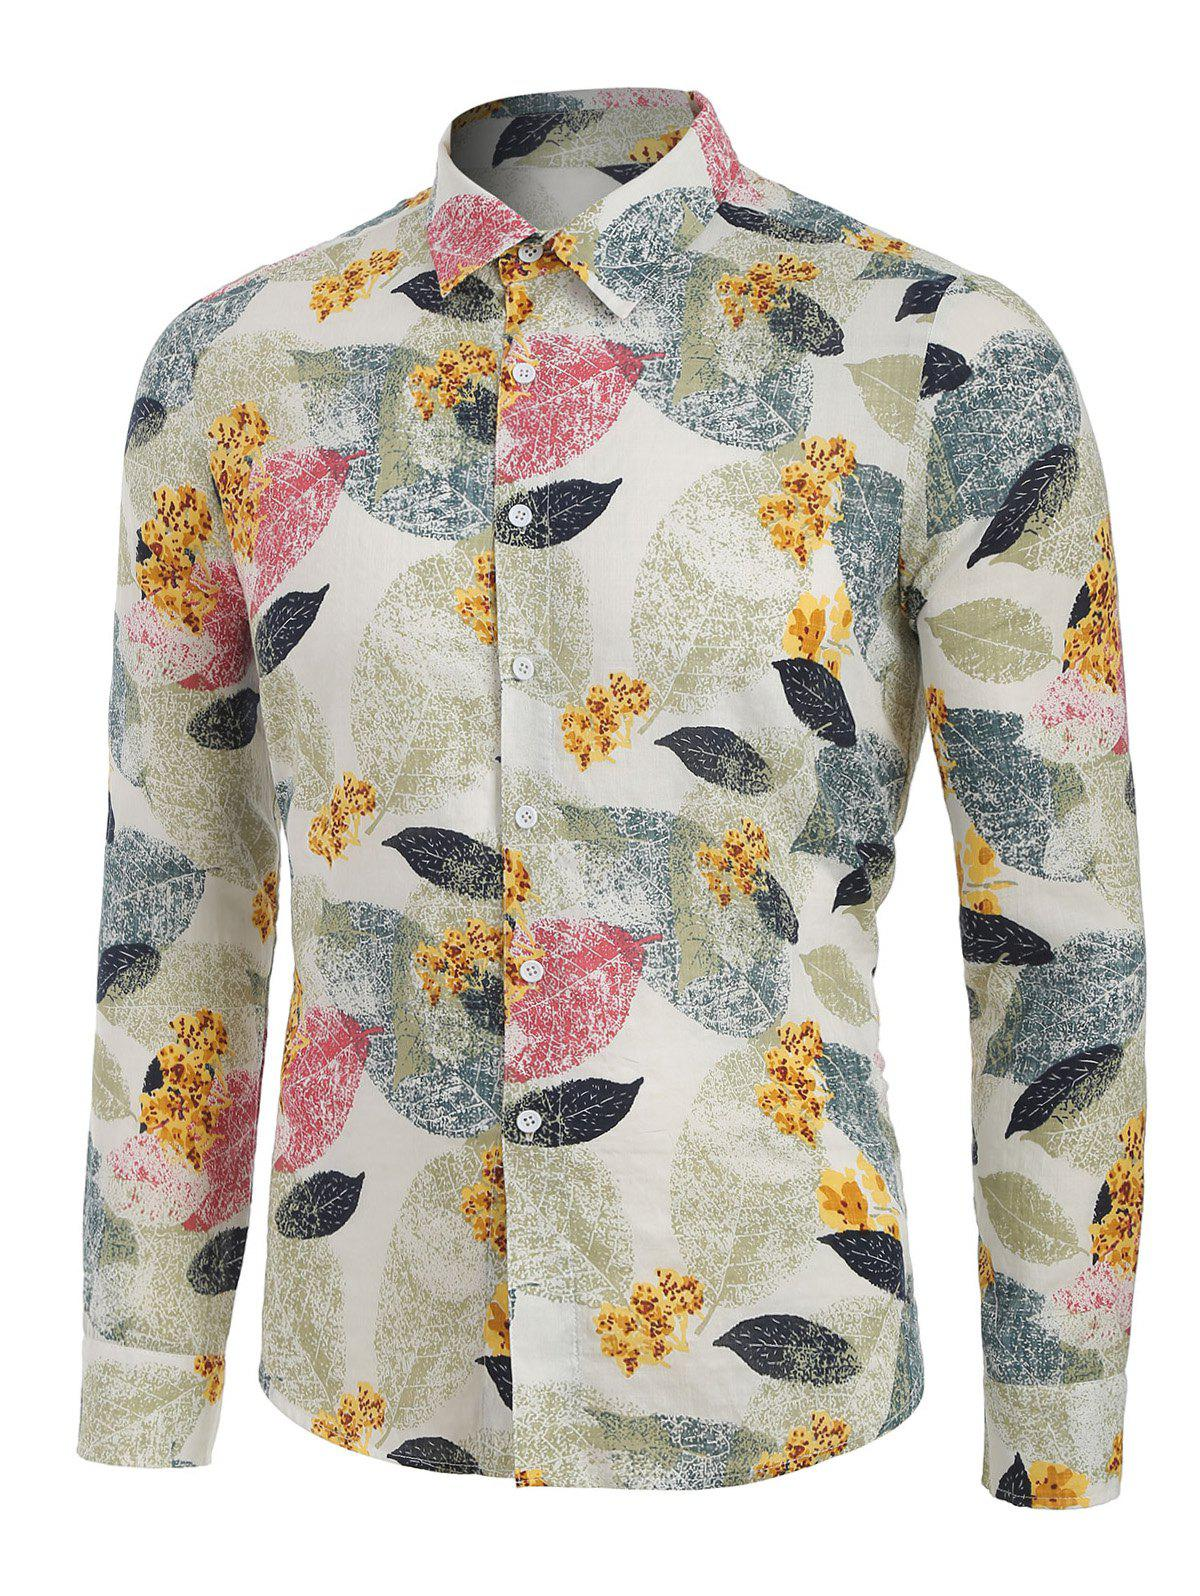 Unique Leaves and Flowers Print Button Up Long Sleeve Shirt